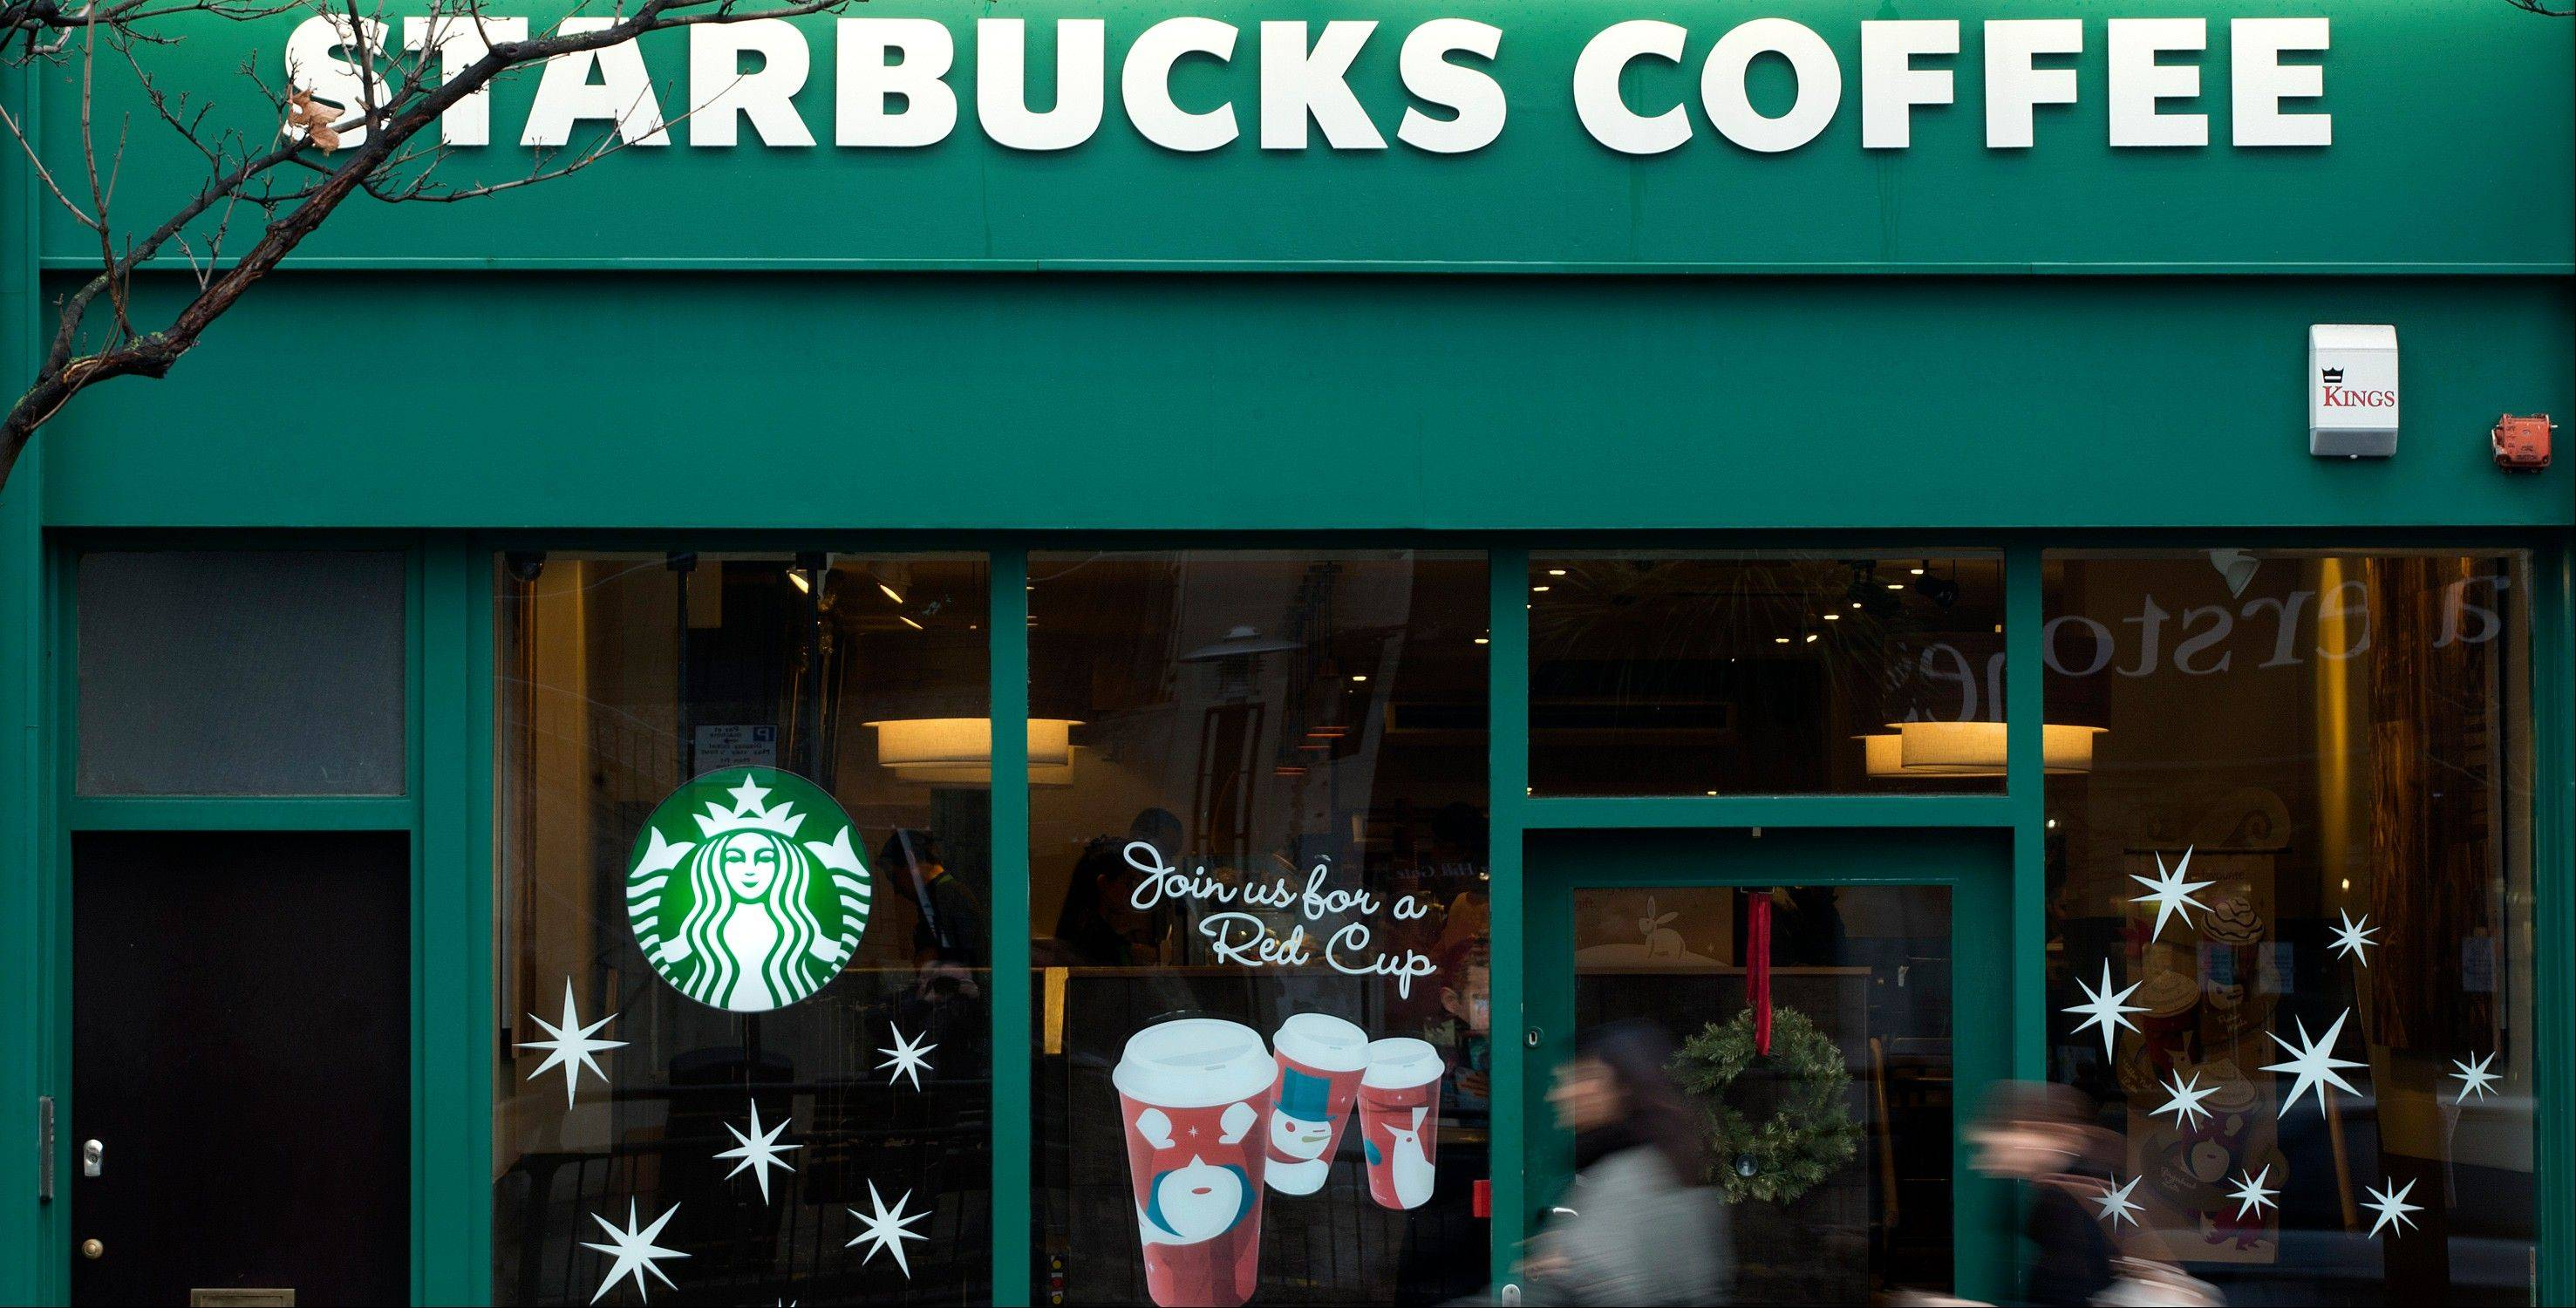 Another Starbucks may soon pop up around the corner, with the world�s biggest coffee company planning to add at least 1,500 cafes in the U.S. over the next five years. The plan would boost the number of Starbucks cafes in the country by about 13 percent. It is set to be announced at the company�s investor day in New York on Wednesday.